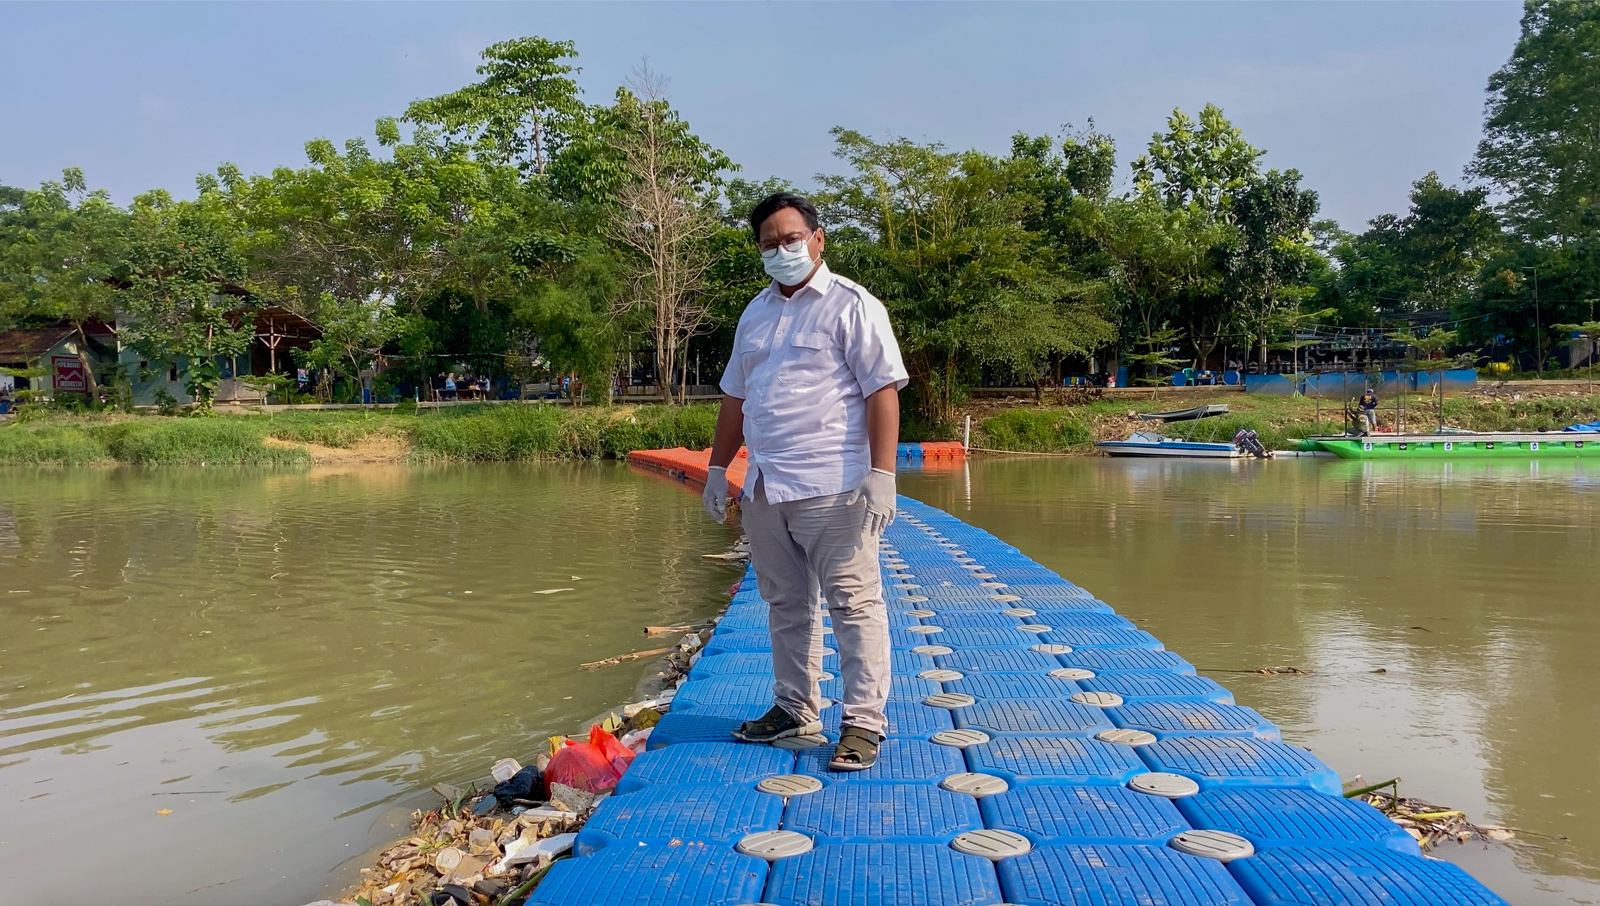 Ade Yunus, founder of environmental organisation Bank Sampah Sungai Cisadane (Cisadane River Waste Bank) or Banksasuci, stands on a floating boom used to collect waste from the Cisadane River in Tangerang, Indonesia.